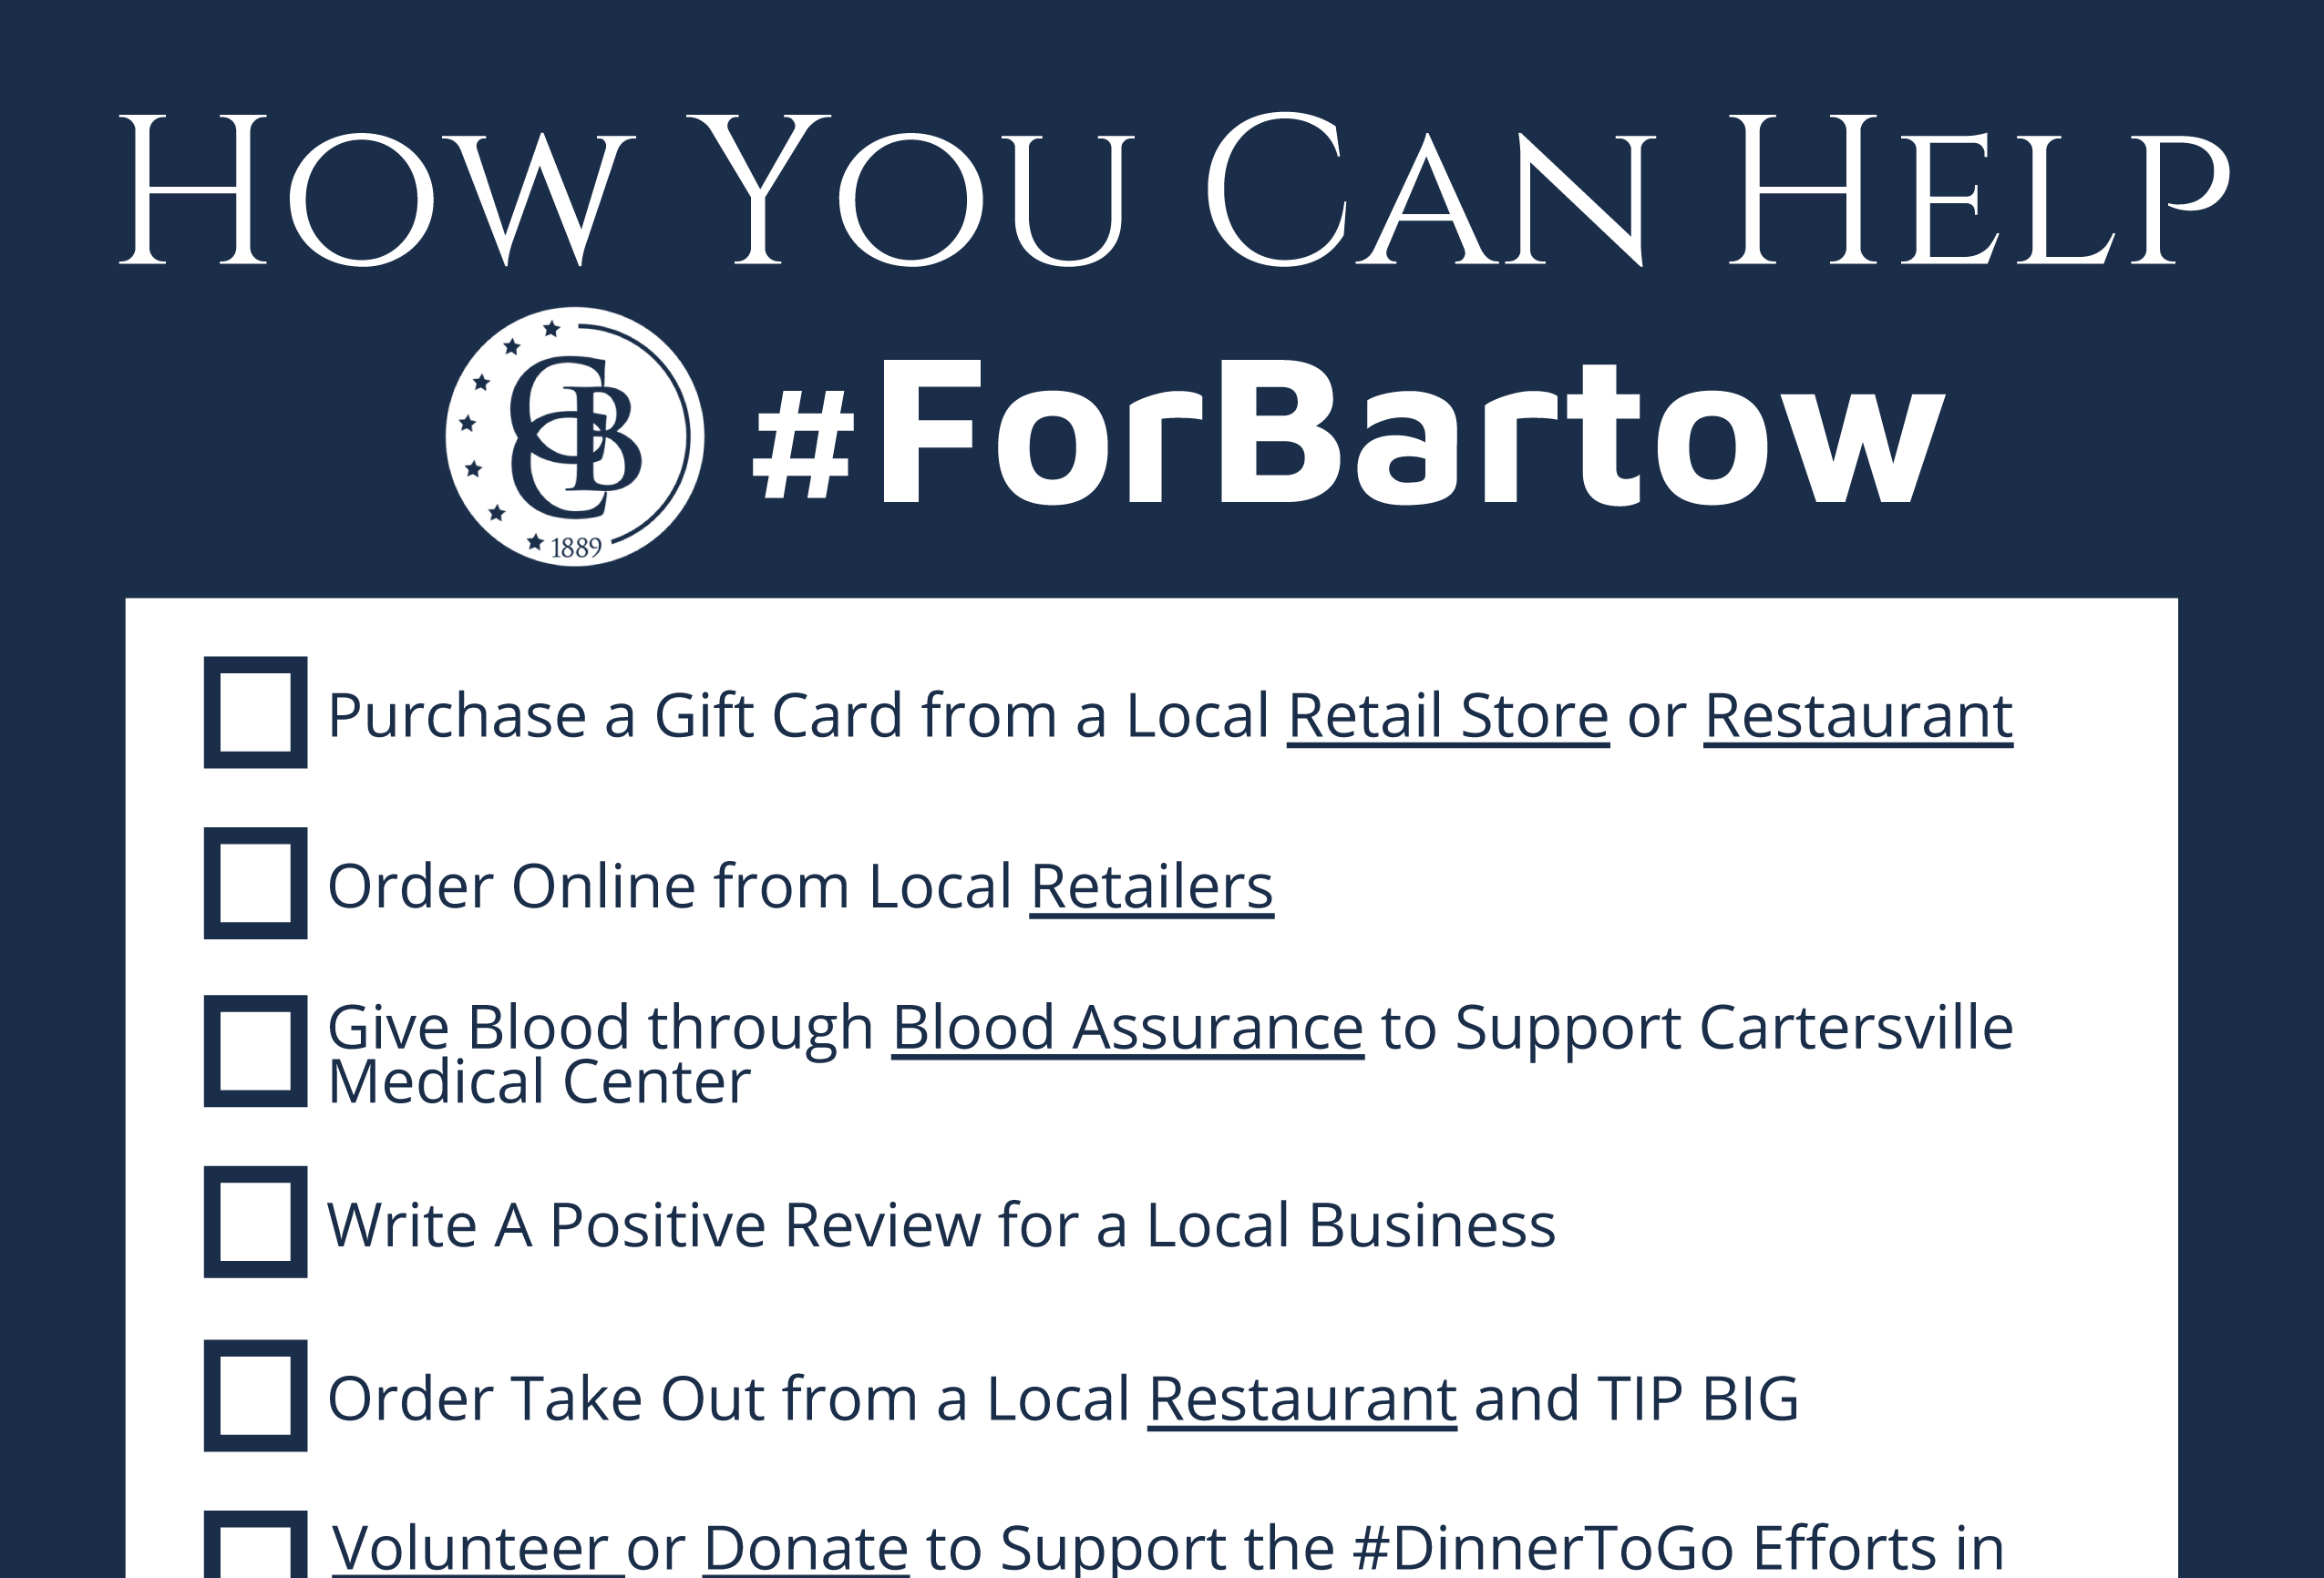 Download your checklist to start helping the community! #ForBartow